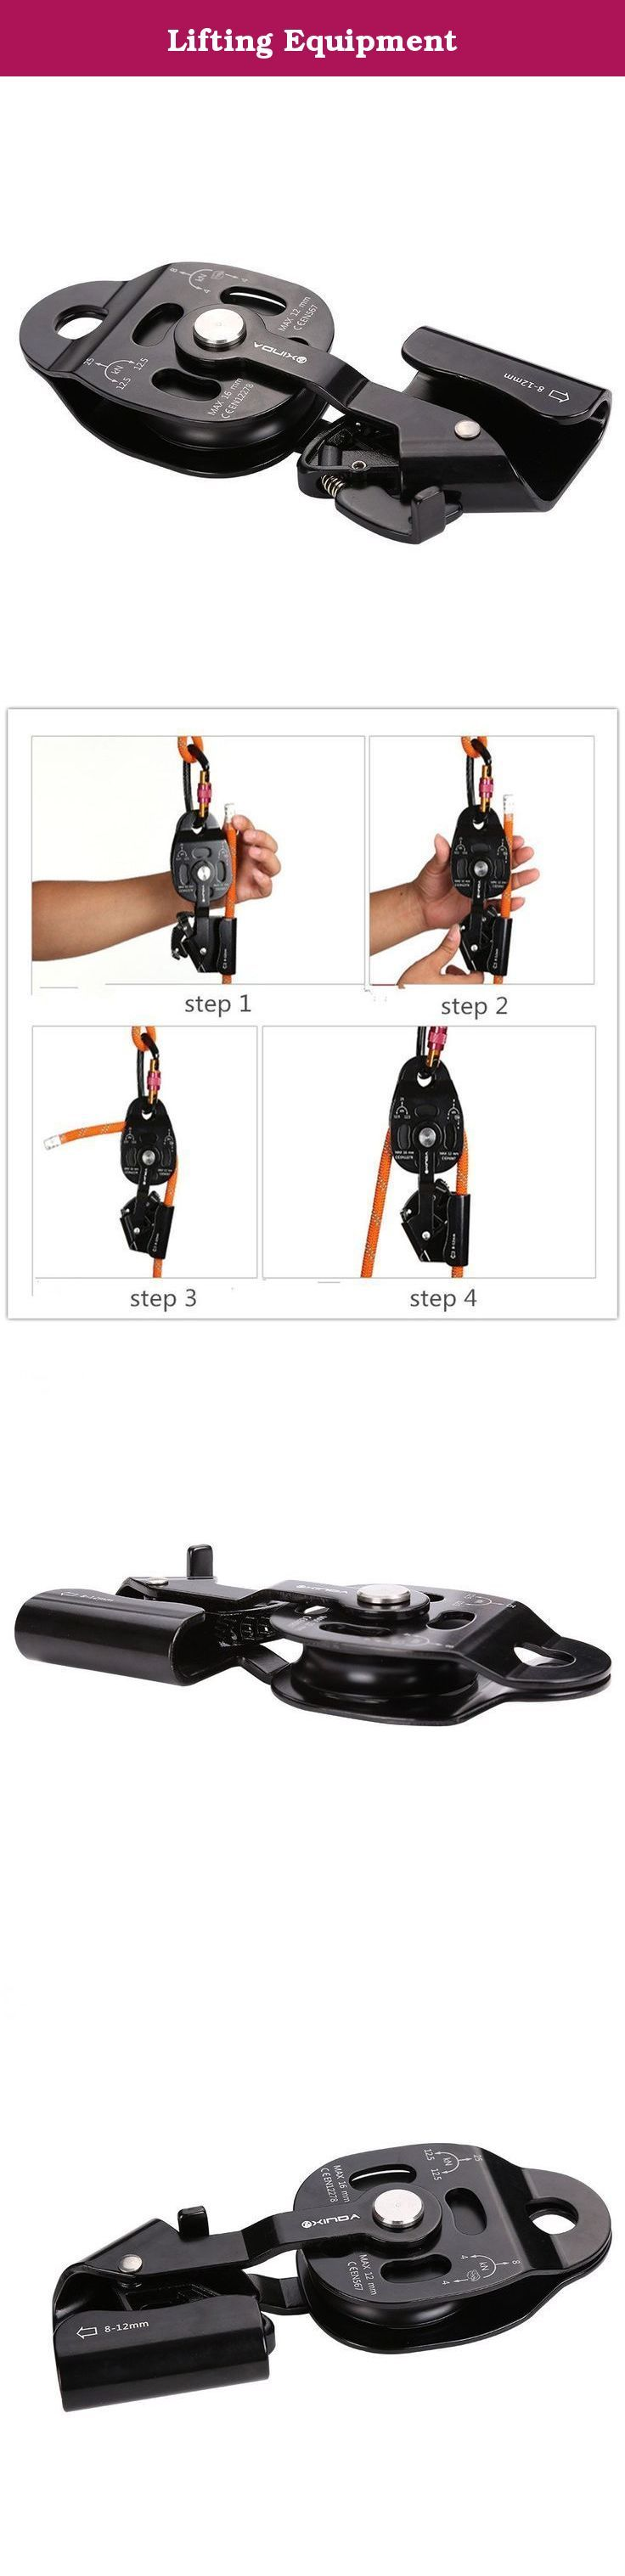 Lifting Equipment. Product Description s_customized:YesModel Number:910096Suit for :Rock, Ice Climbing, Rescue, Caving etc.Weight:390gTension:static tension: 25KN; rolling tension: 12.5KNItem Name:Pulley AscenderCertify:CE 1019 EN 12278Material:aluminium-magnesium alloy 1. Item: Pull up device 2. Material: aluminium-magnesium alloy 3. Size: 7.5cm(L) X 18cm(W) 4. Tension: static tension: 25KN; rolling tension: 12.5KN; drag tension: 8KN; 5. Color: black 6. Weight: about 390g 7. Used for…